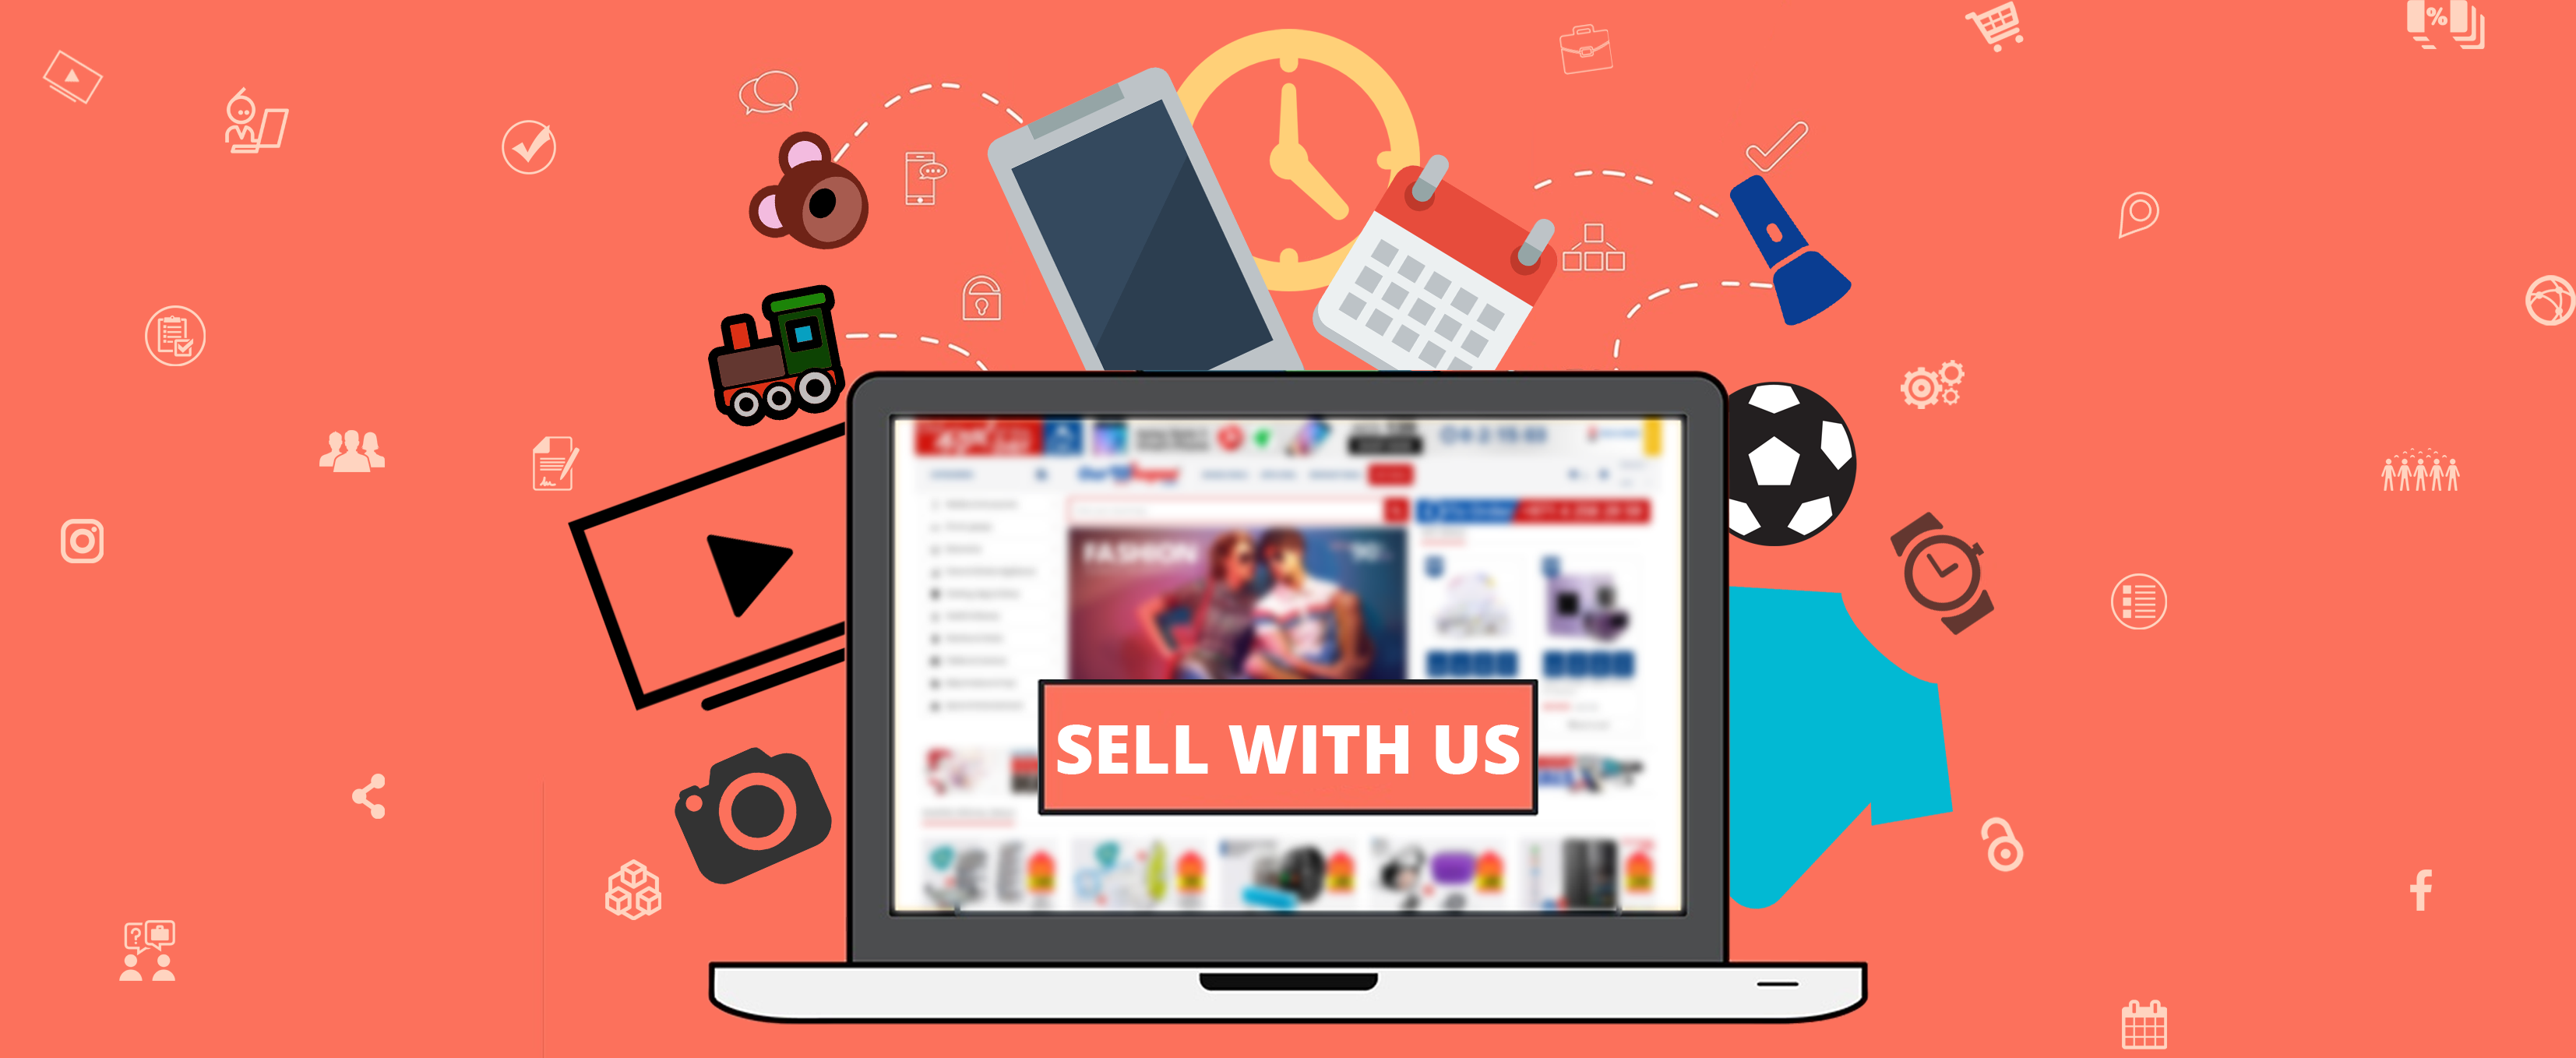 sell with ourshopee.com